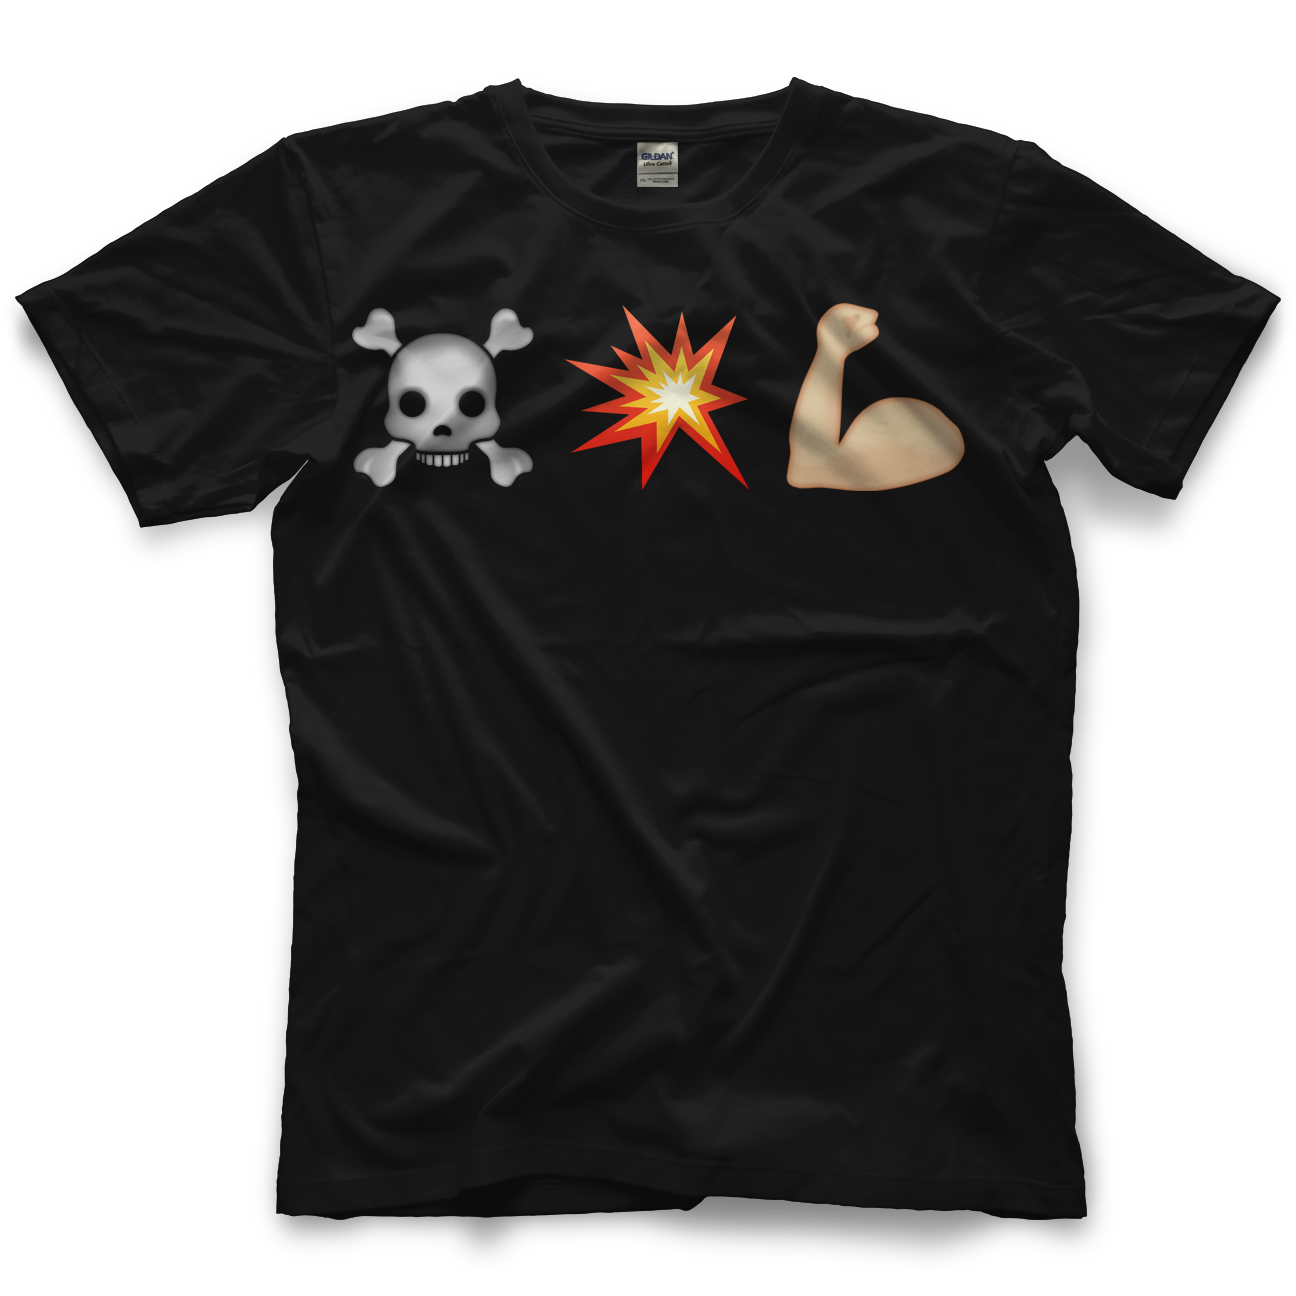 Chris Hero Death By Emoji T-shirt